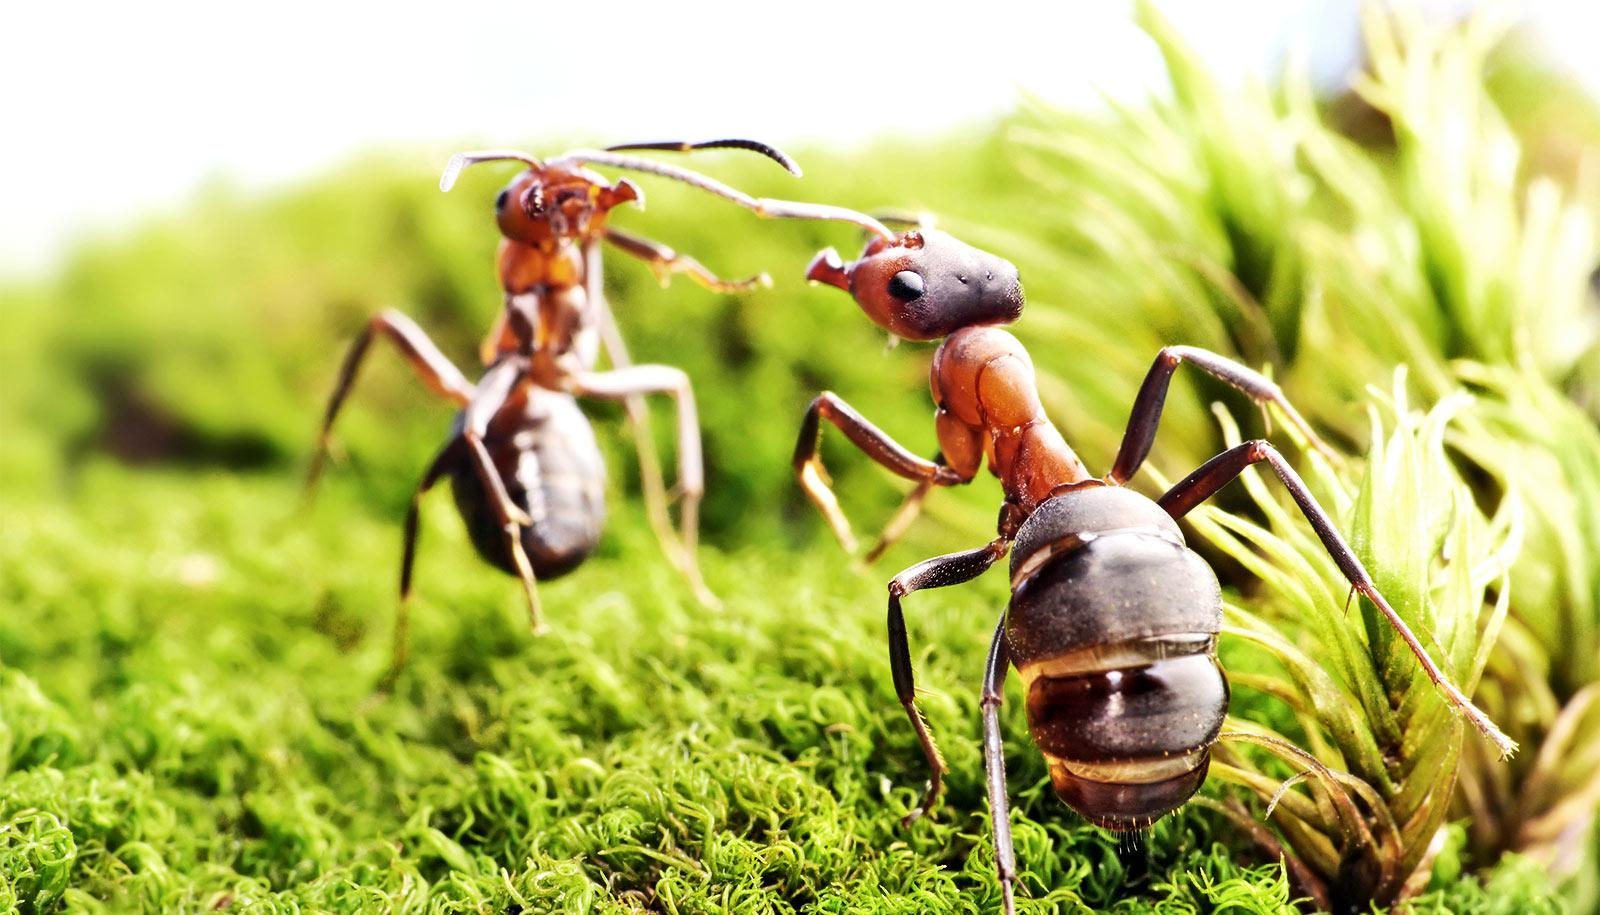 Two reddish brown ants face off against each other, rising up on their hind legs, on what looks like green moss